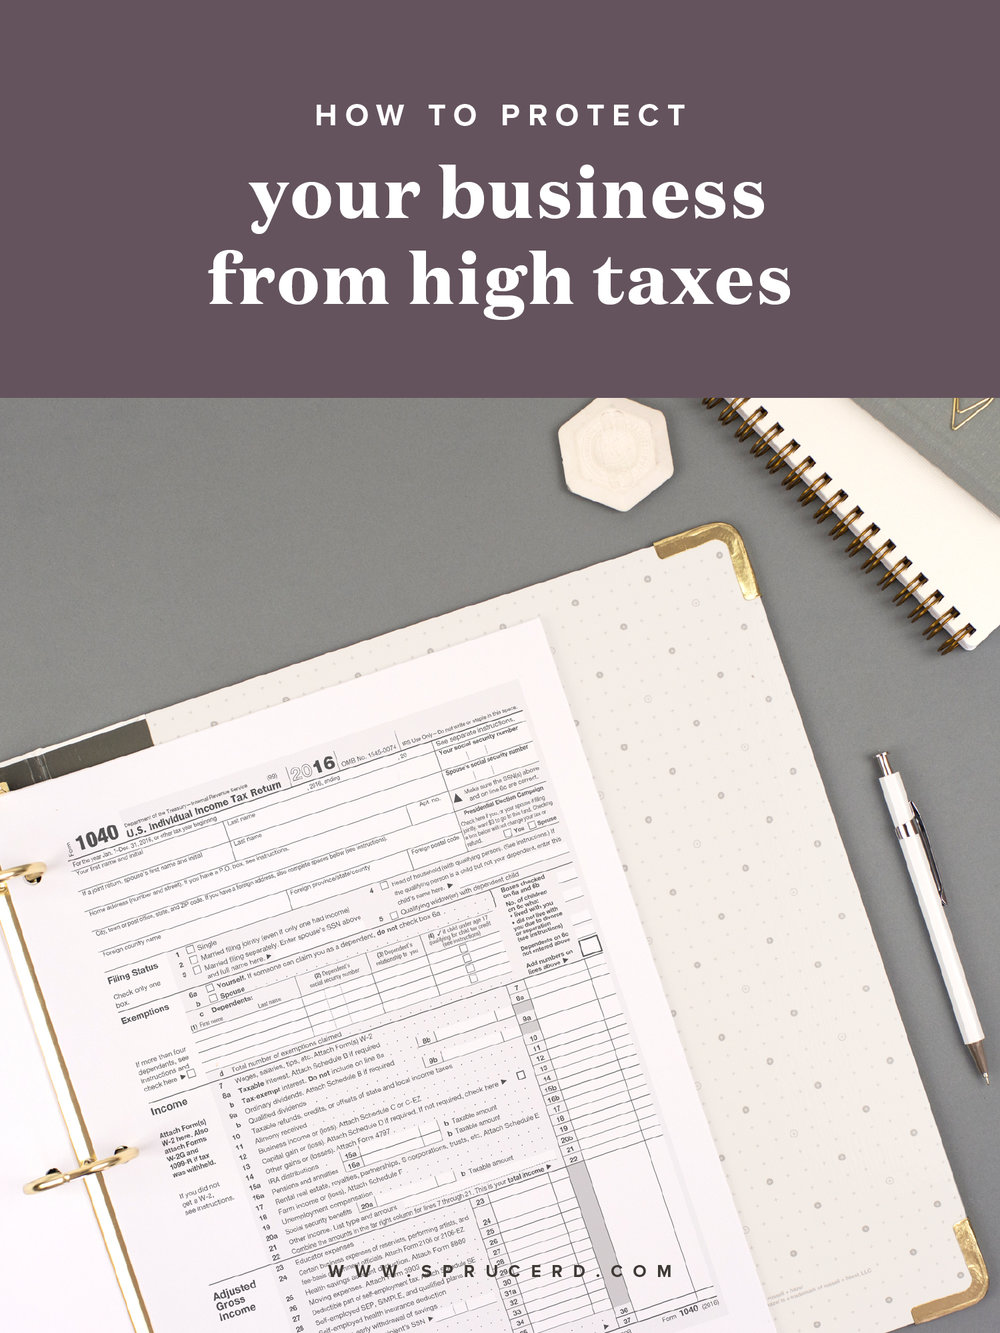 How to protect your business from high taxes | Spruce Rd. | Whew. Tax season, amiright!? Not going to lie, each quarter/year I stress a bit about what scary number is going to pop up that I owe. I'm sharing a few ways I'm protecting my business this year from high taxes.